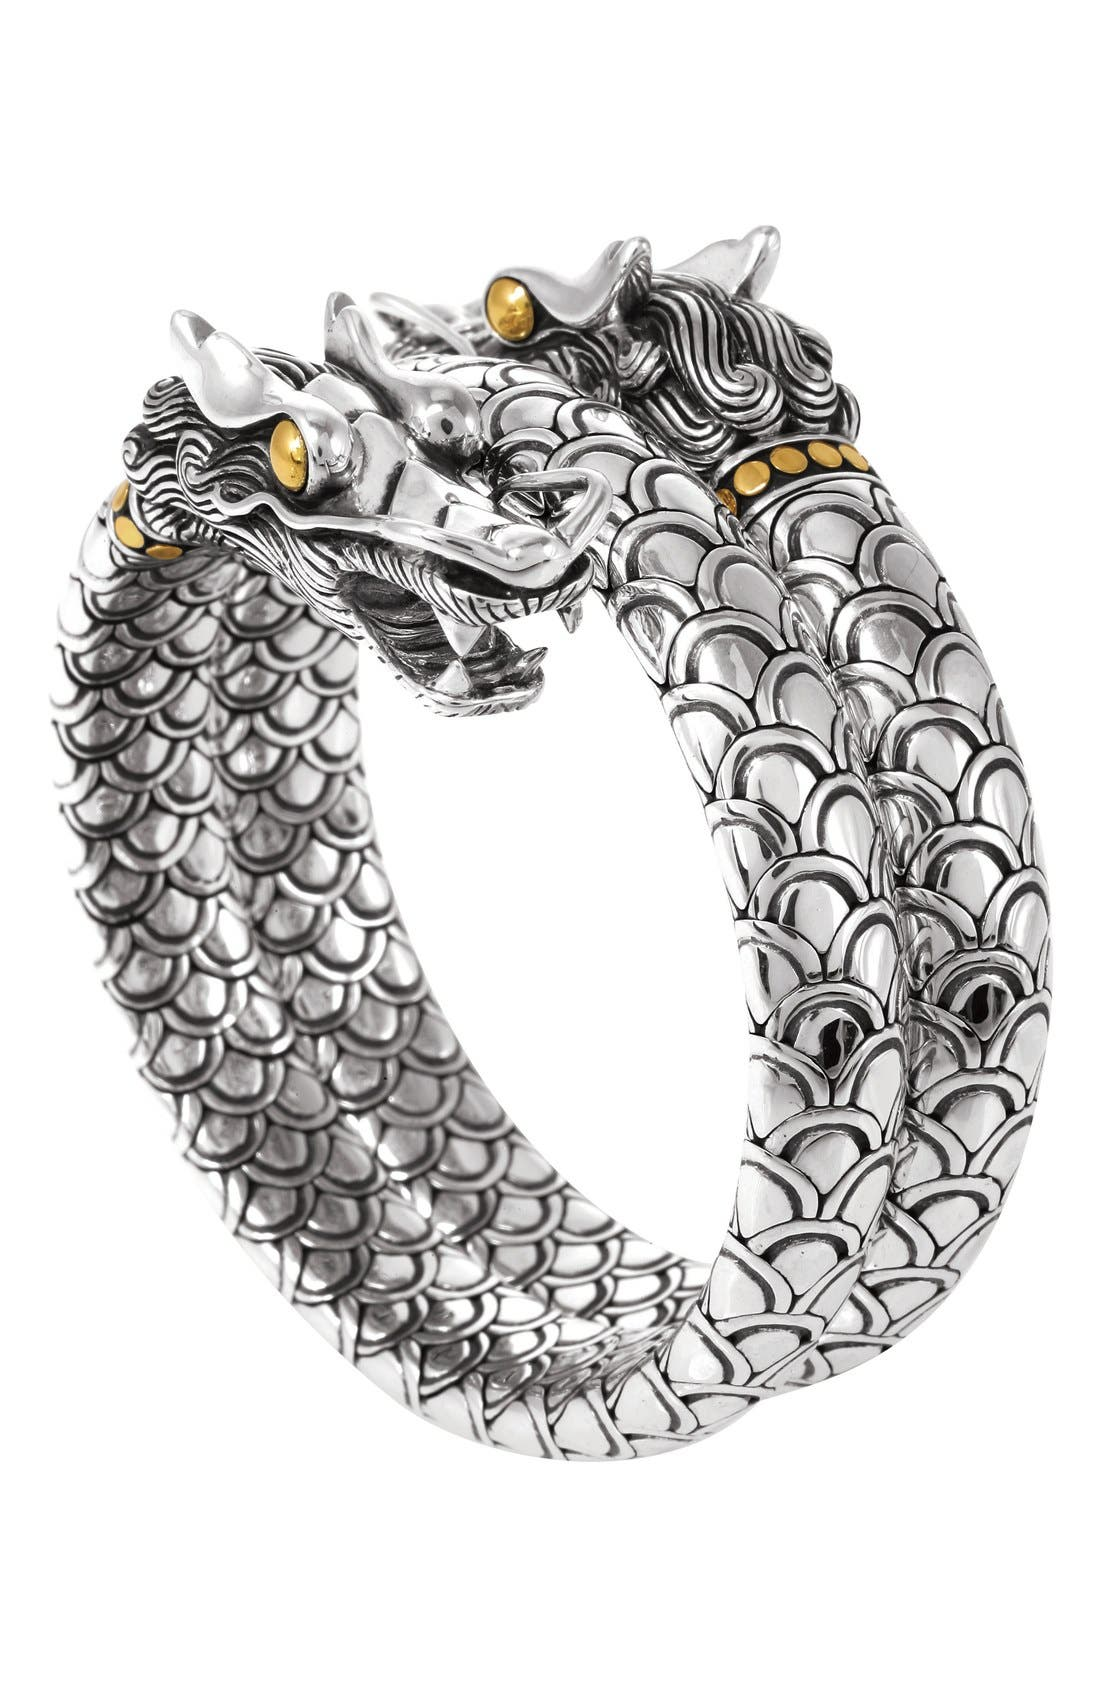 'Naga' Double Coil Dragon Bracelet,                             Main thumbnail 1, color,                             SILVER/ GOLD